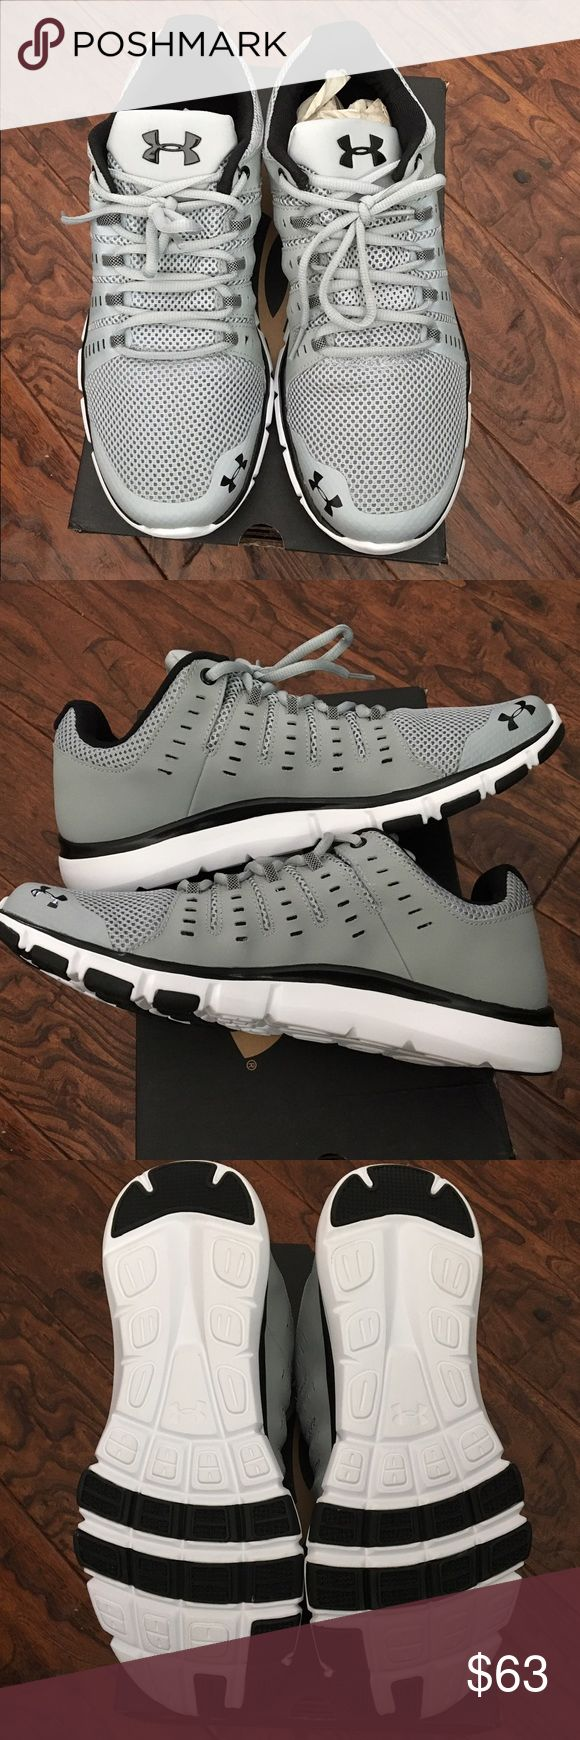 Under Armour men's tennis shoes Brand new in box. Men's tennis shoes. Gray and black Under Armour Shoes Sneakers